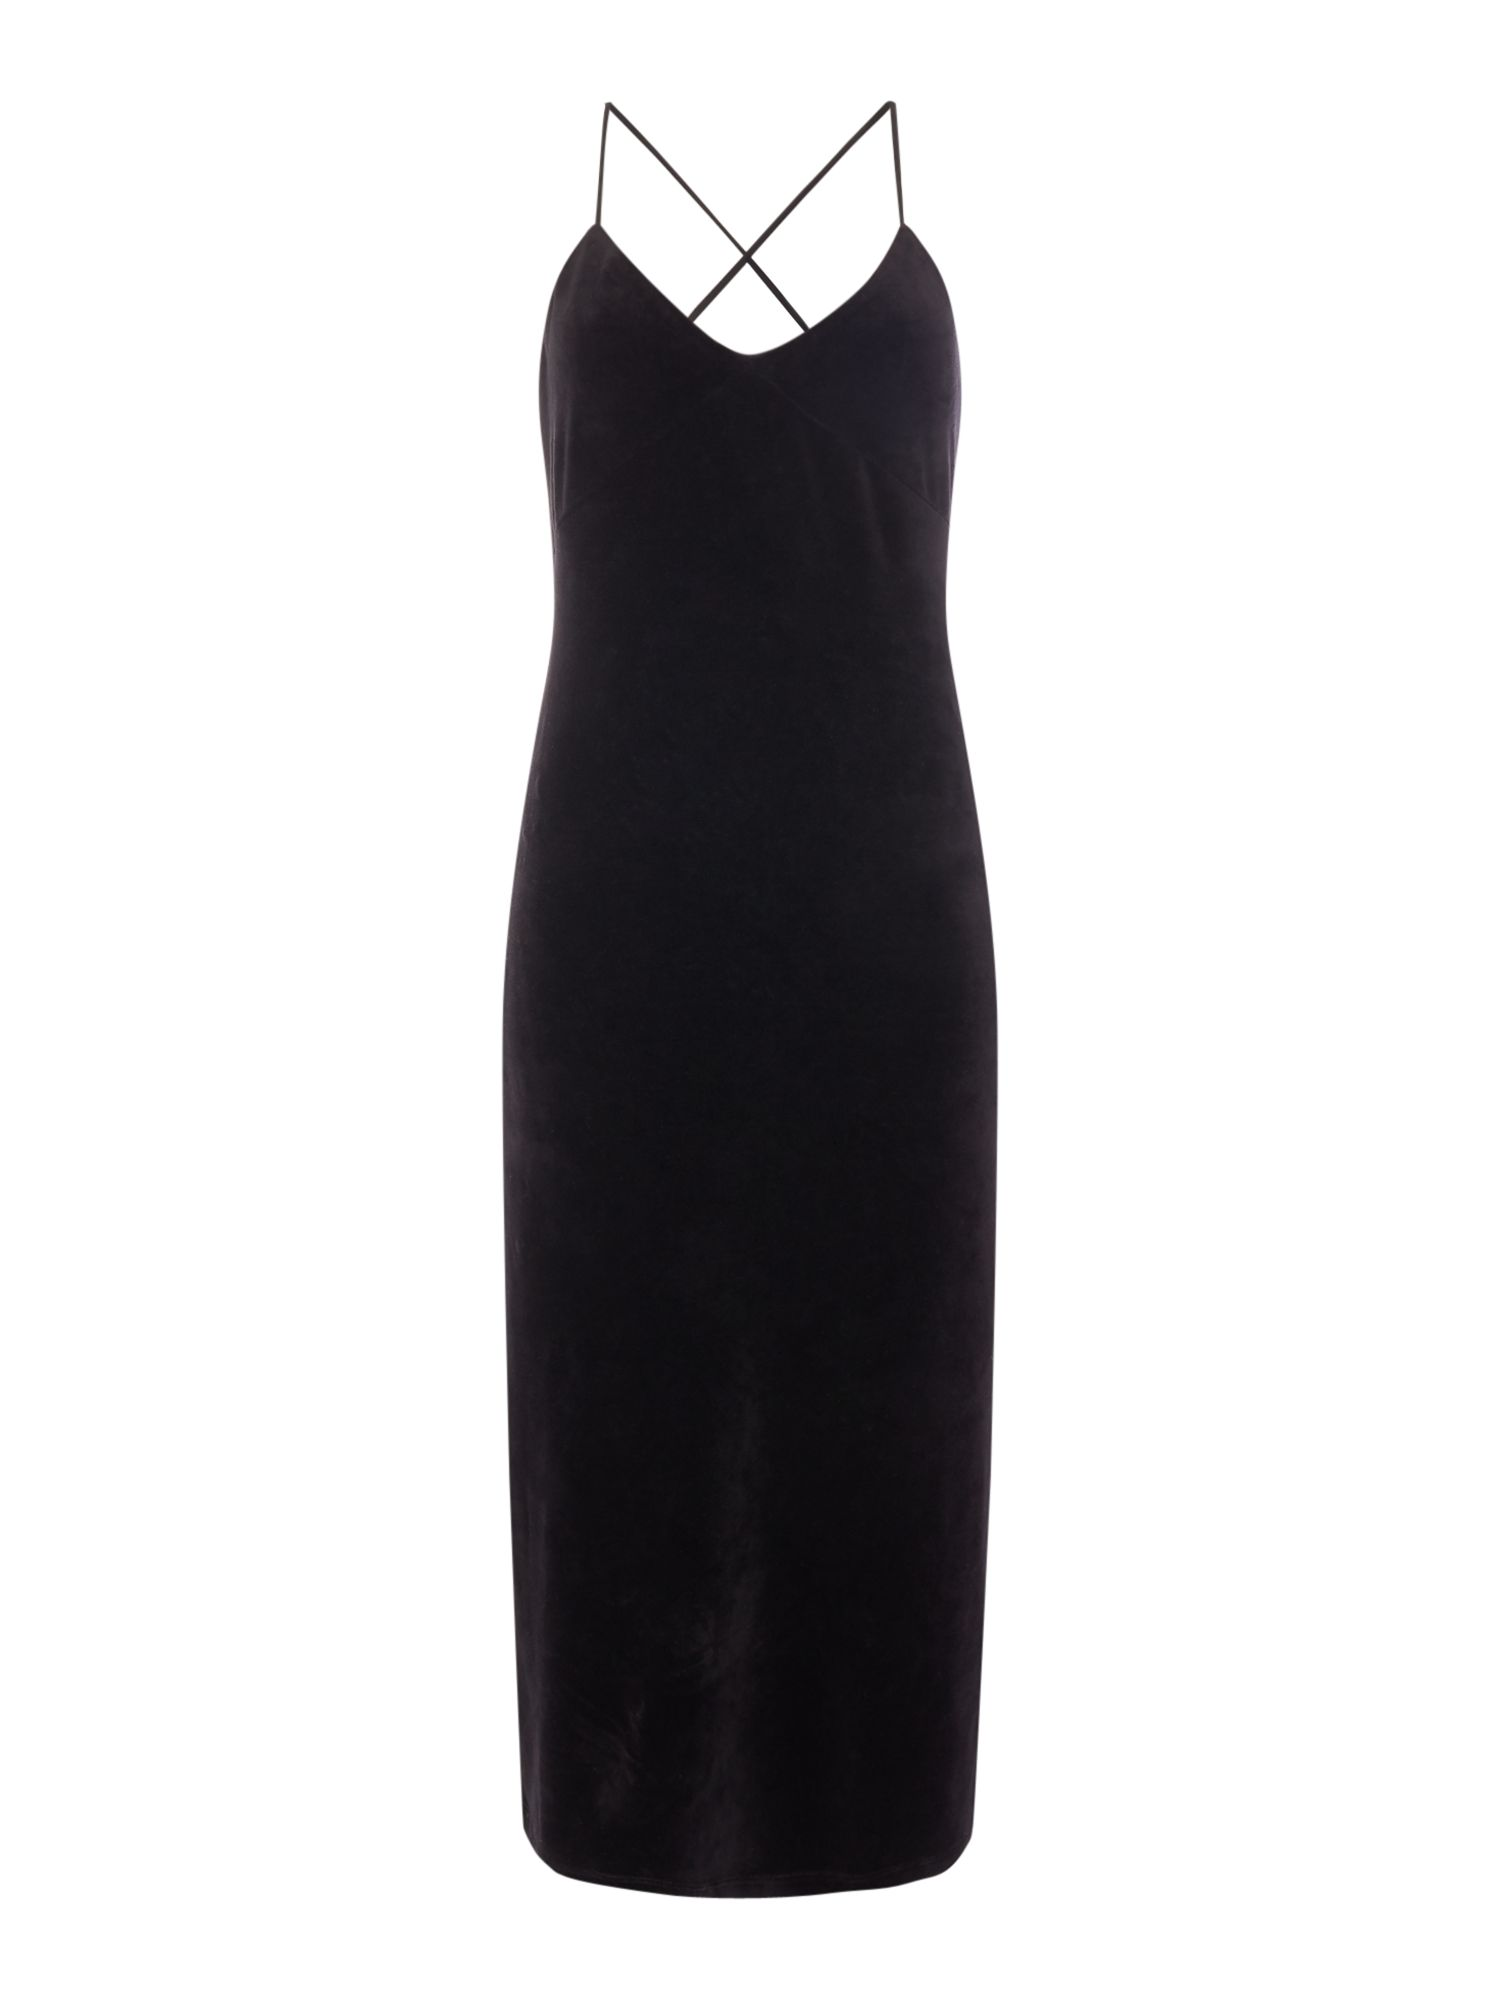 Juicy by Juicy Couture Stretch Velour Cross Back Slip Dress, Black